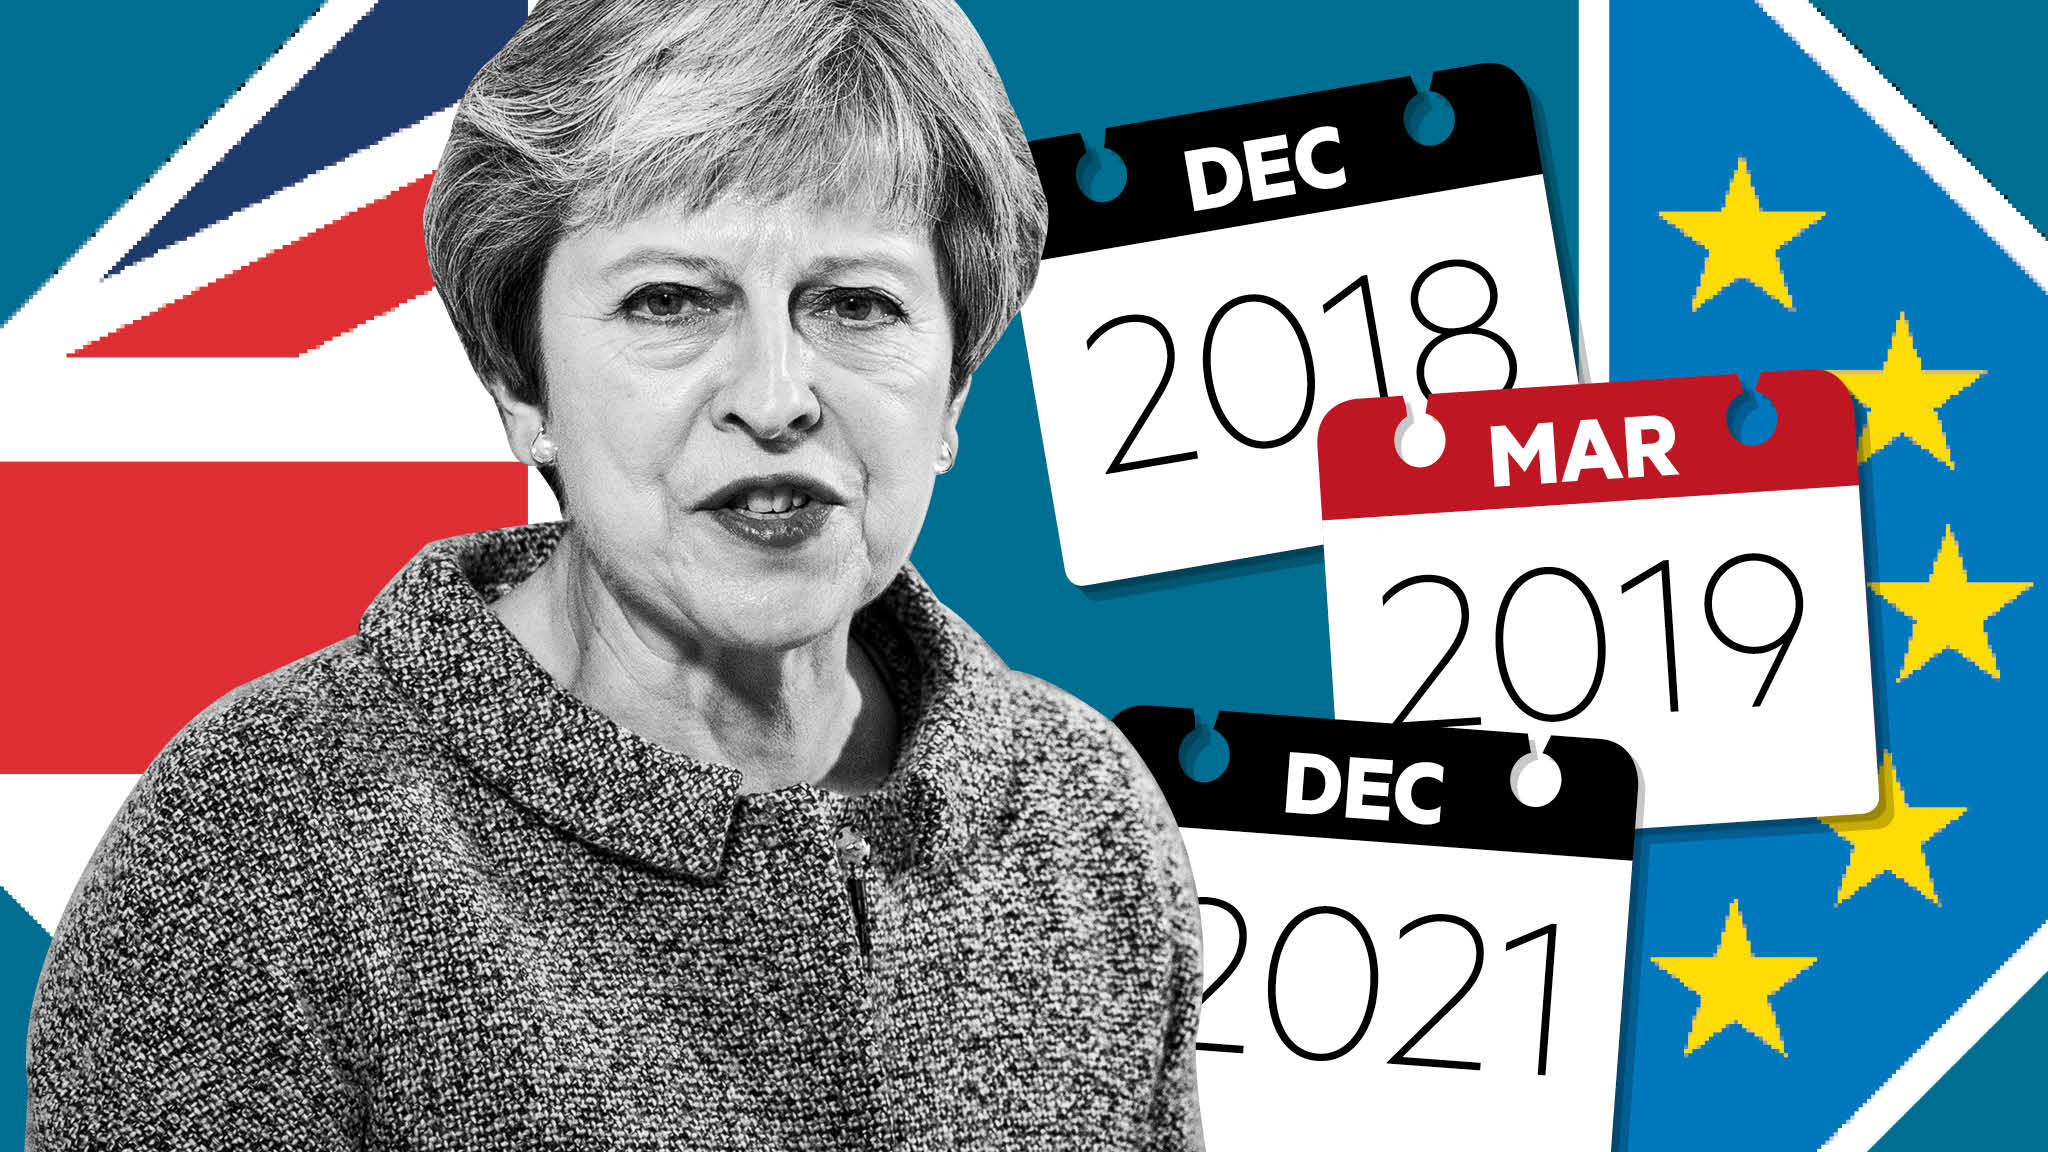 Brexit timeline: the key dates in UK's divorce from EU